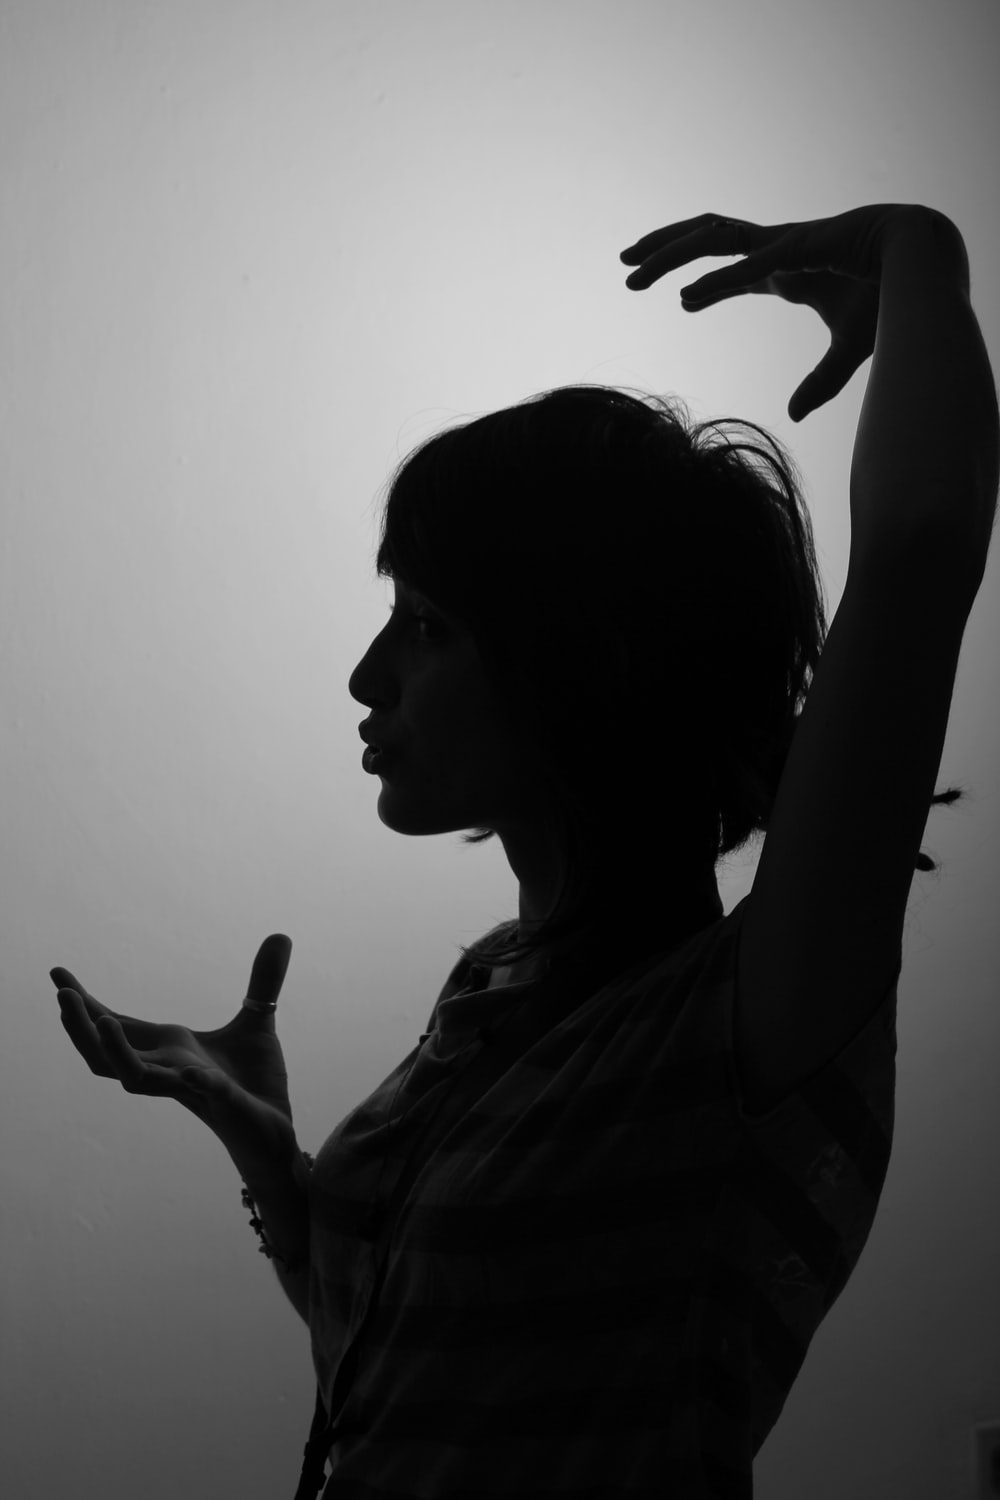 woman raising left and right hands